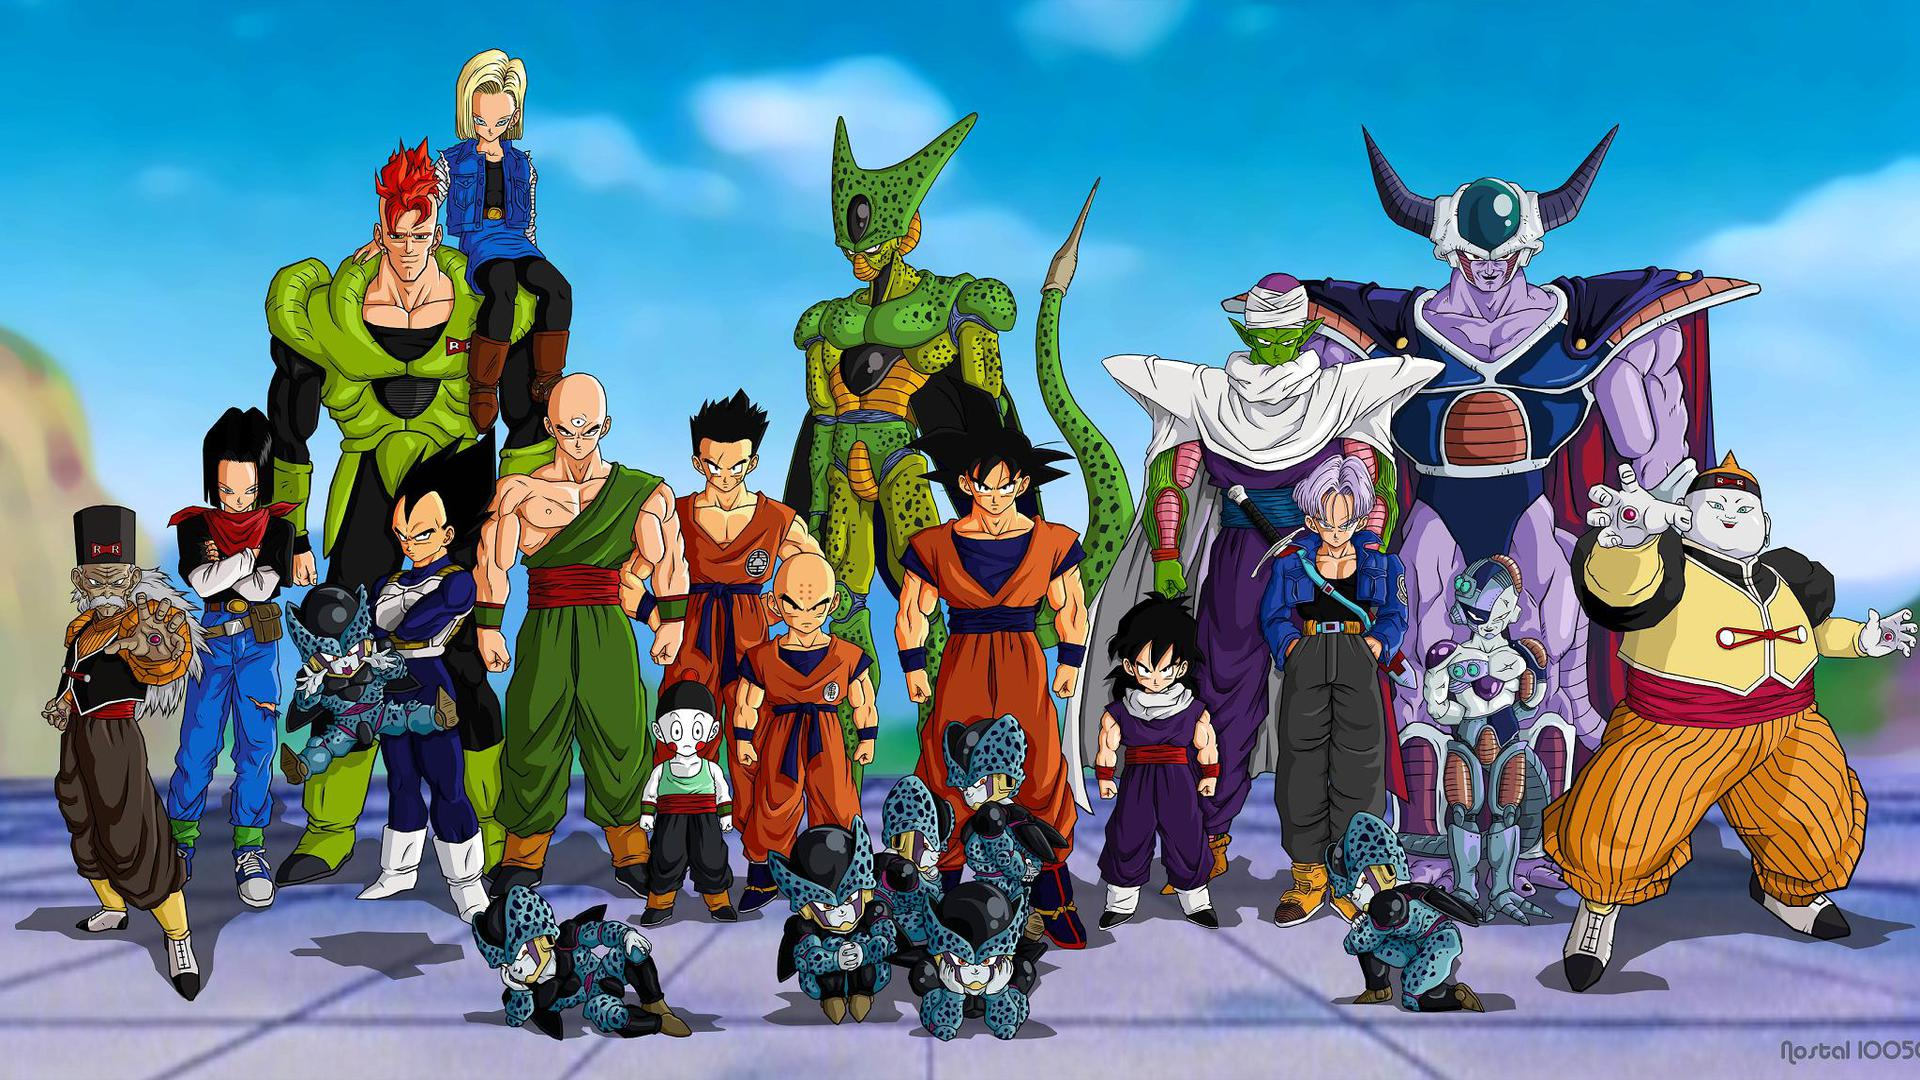 Dragon Ball Z Images HD Wallpaper of Anime 1920x1080